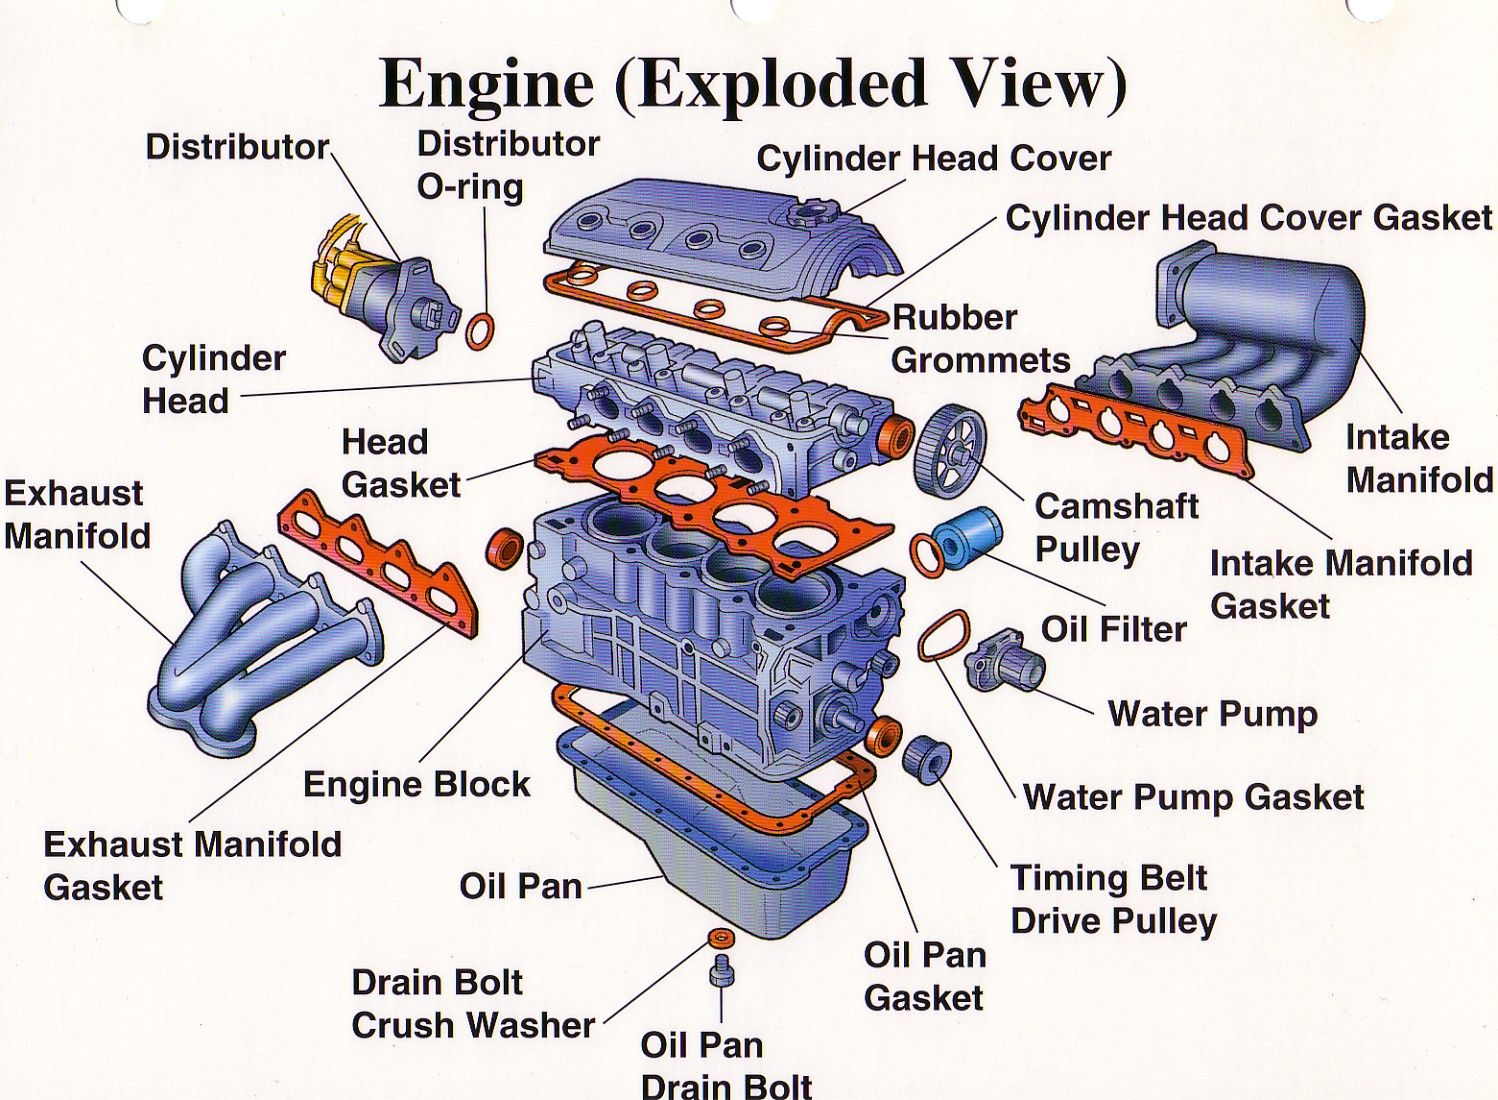 engine parts | HDABOB.com » What makes the engine tick